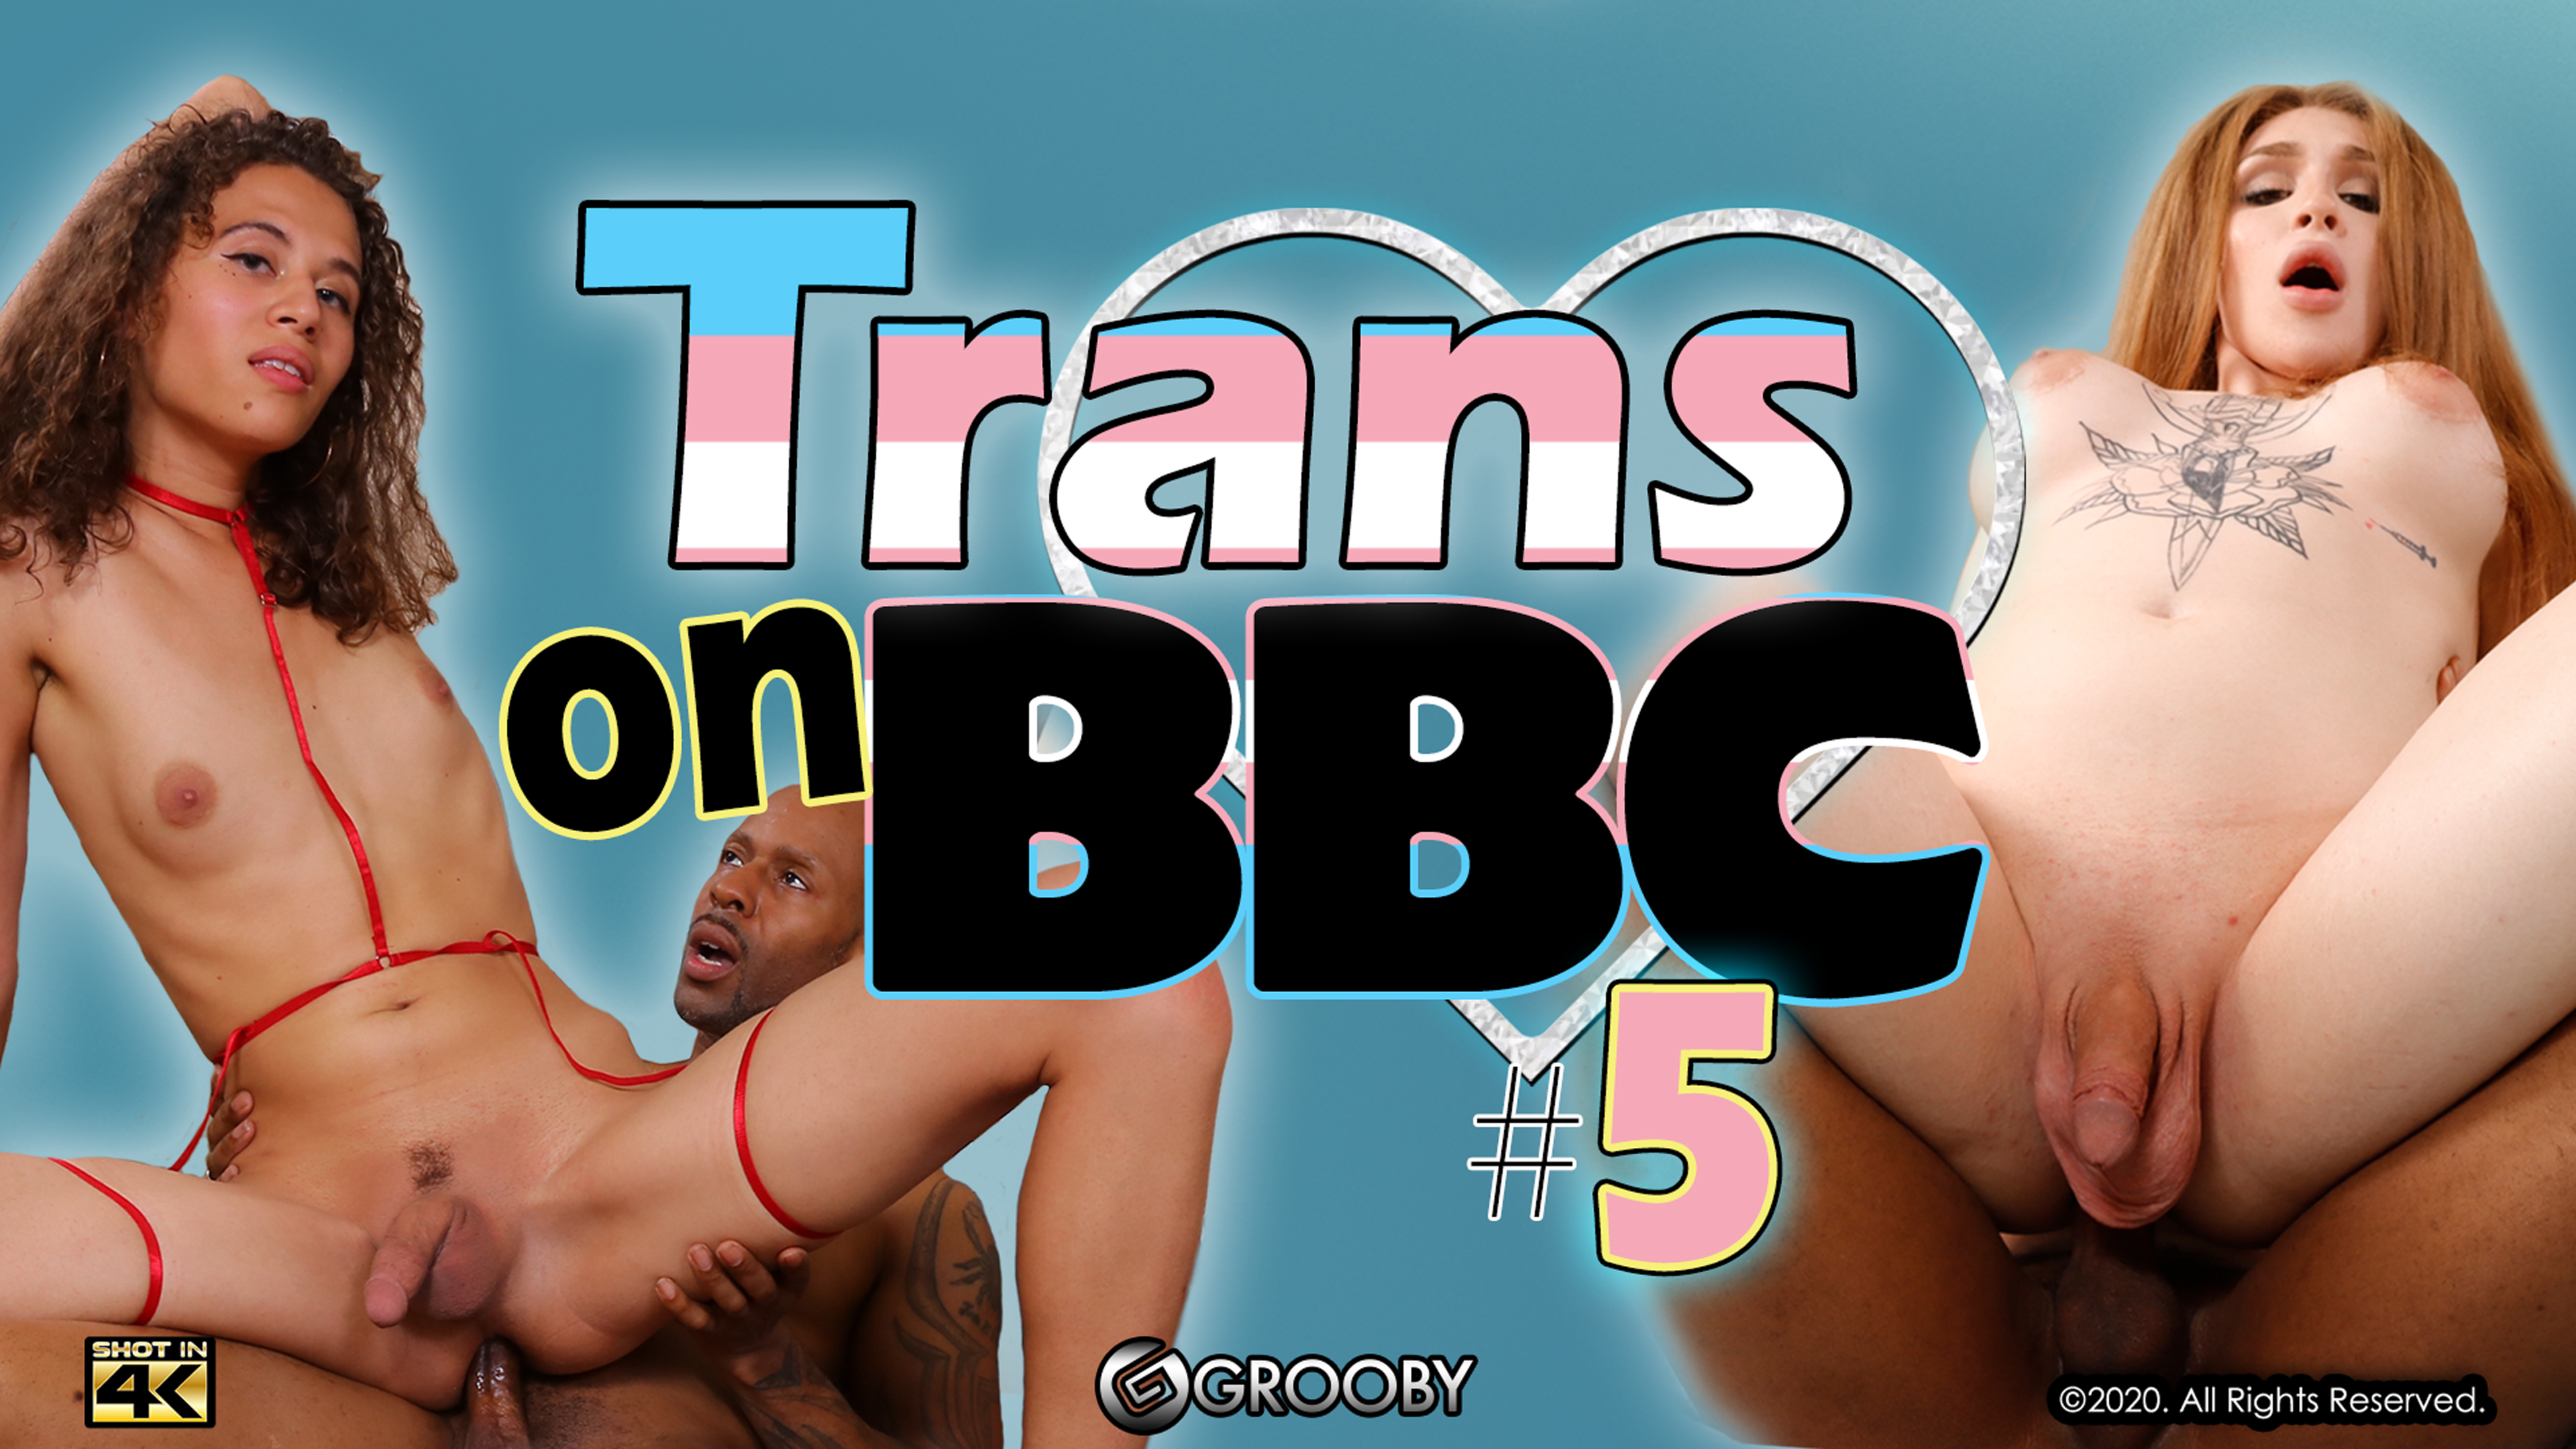 Trans On BBC #5 DVD Trailer